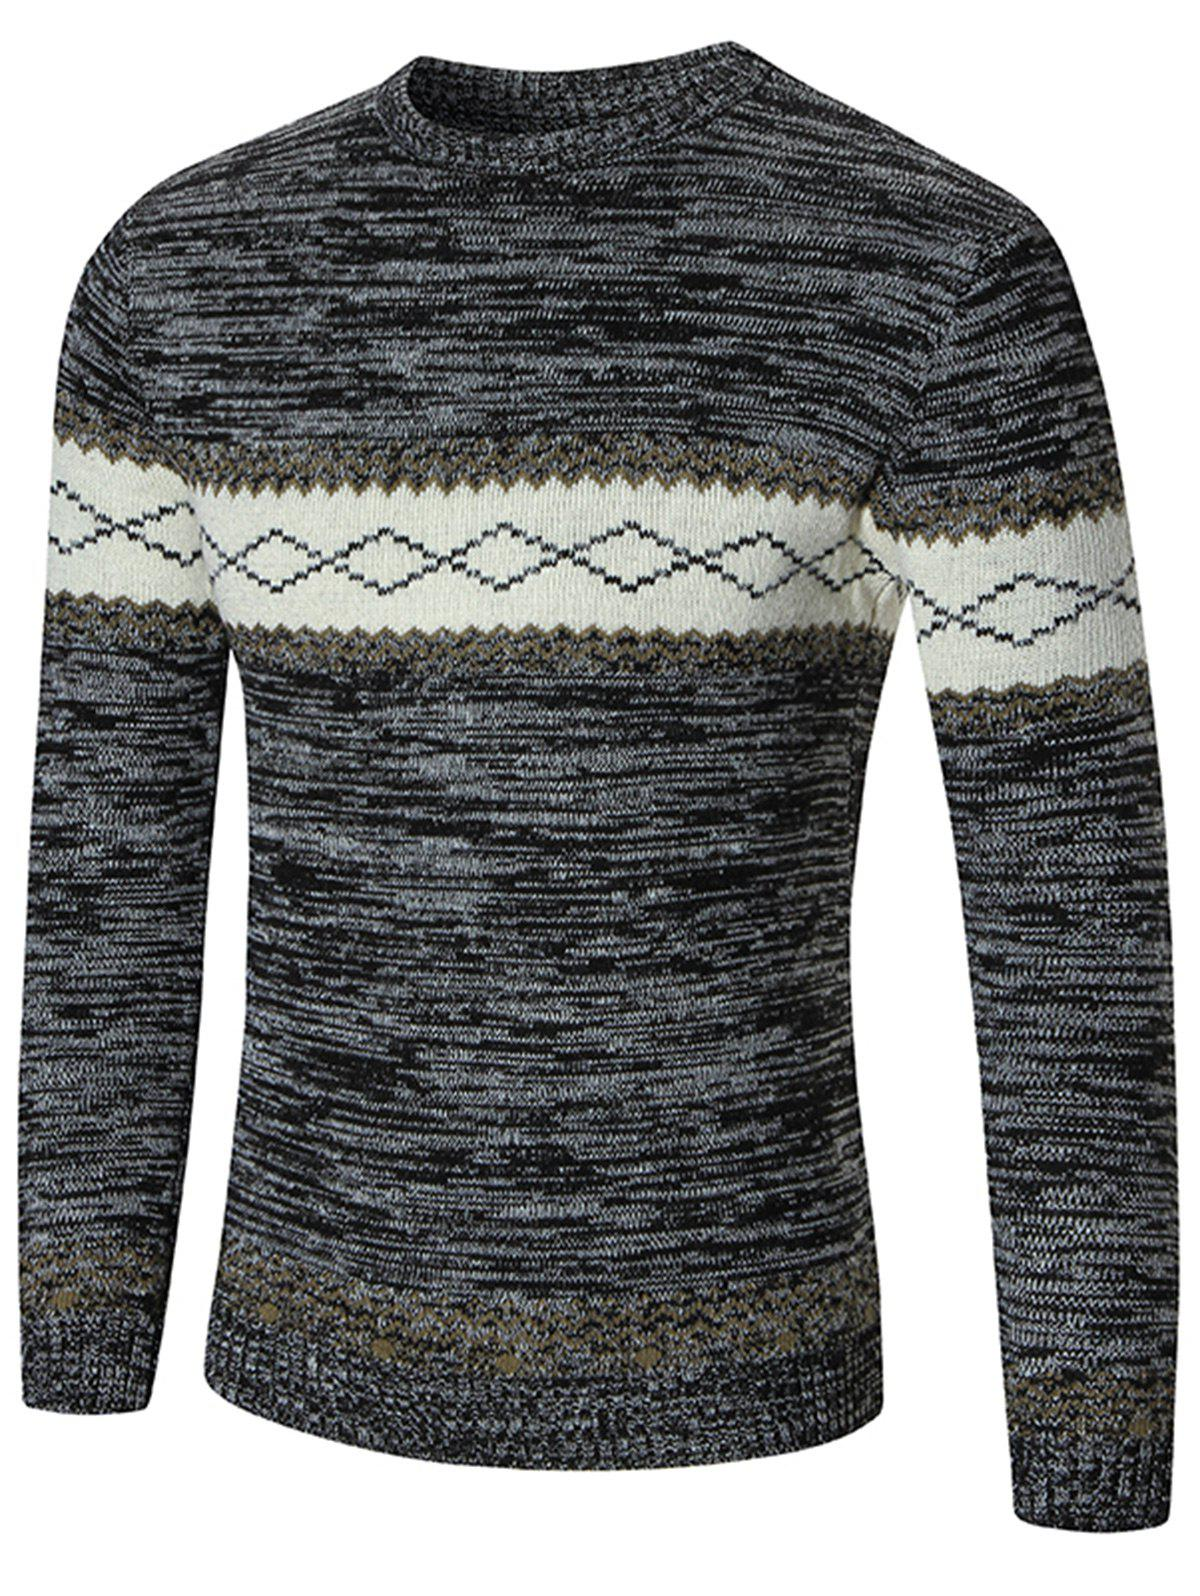 Crew Neck Rhombus Pattern Space Dyed Sweater - DEEP GRAY XL